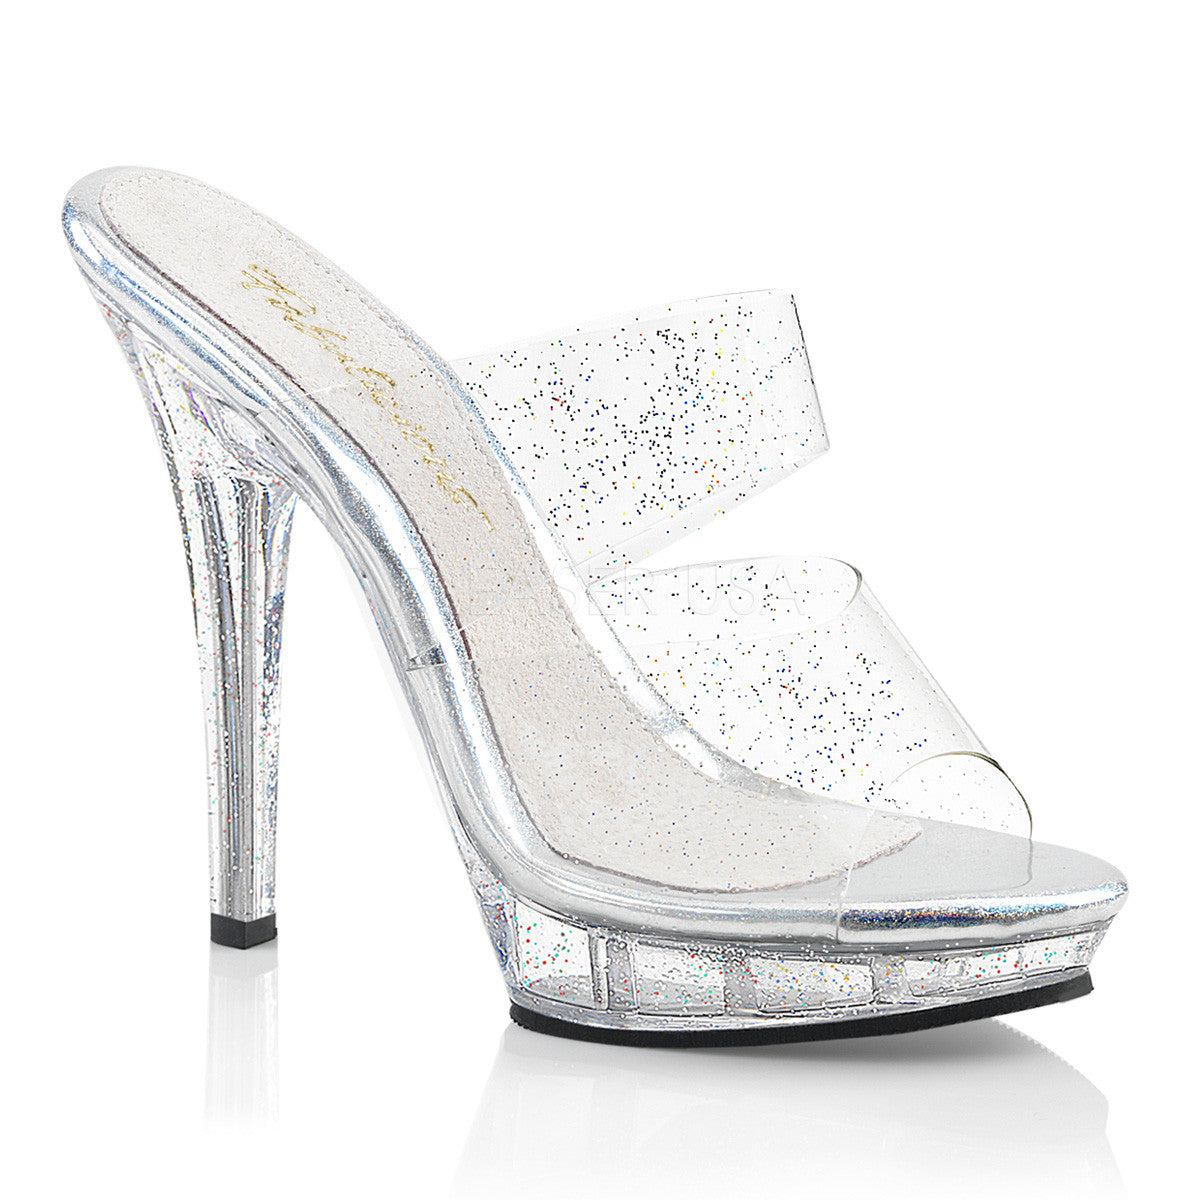 "5"" (12.7cm) Heel, 3/4"" (1.9cm) Platform Two Band Slide Featuring Mini Iridescent Glitters on the Entire Upper & Bottom"